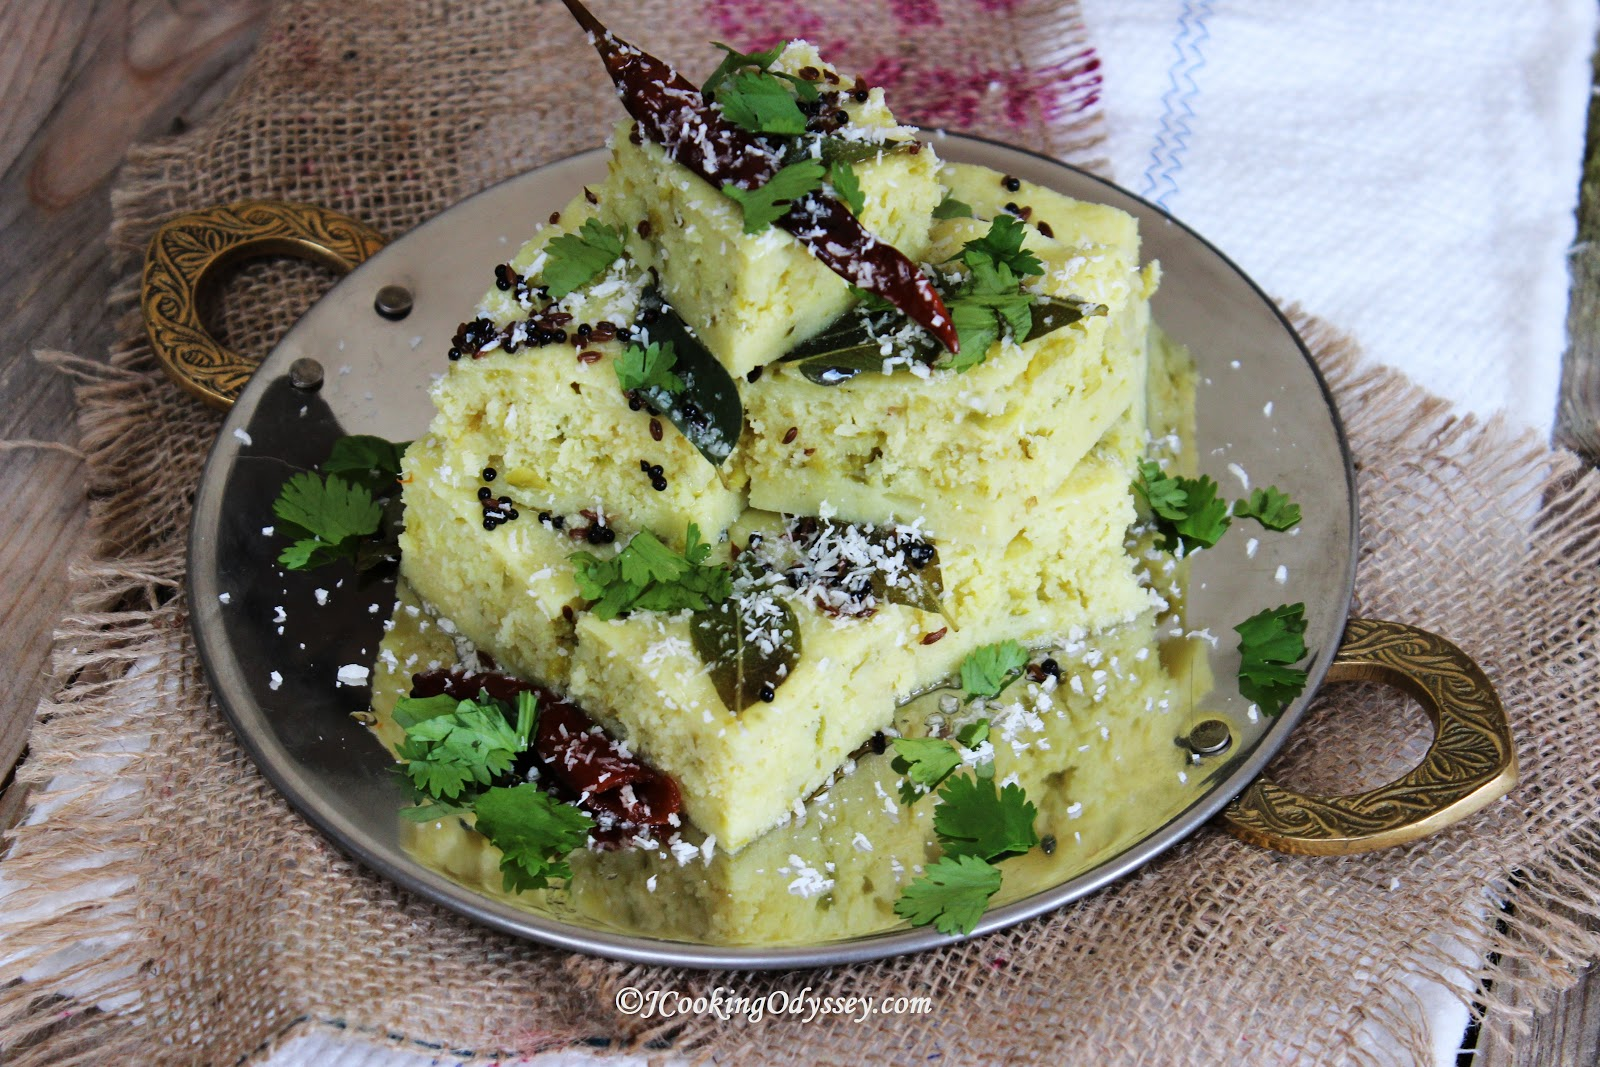 Jagrutis cooking odyssey sooji matar dhokla instant semolina and sooji matar dhokla instant semolina and green peas savoury steamed cake forumfinder Images